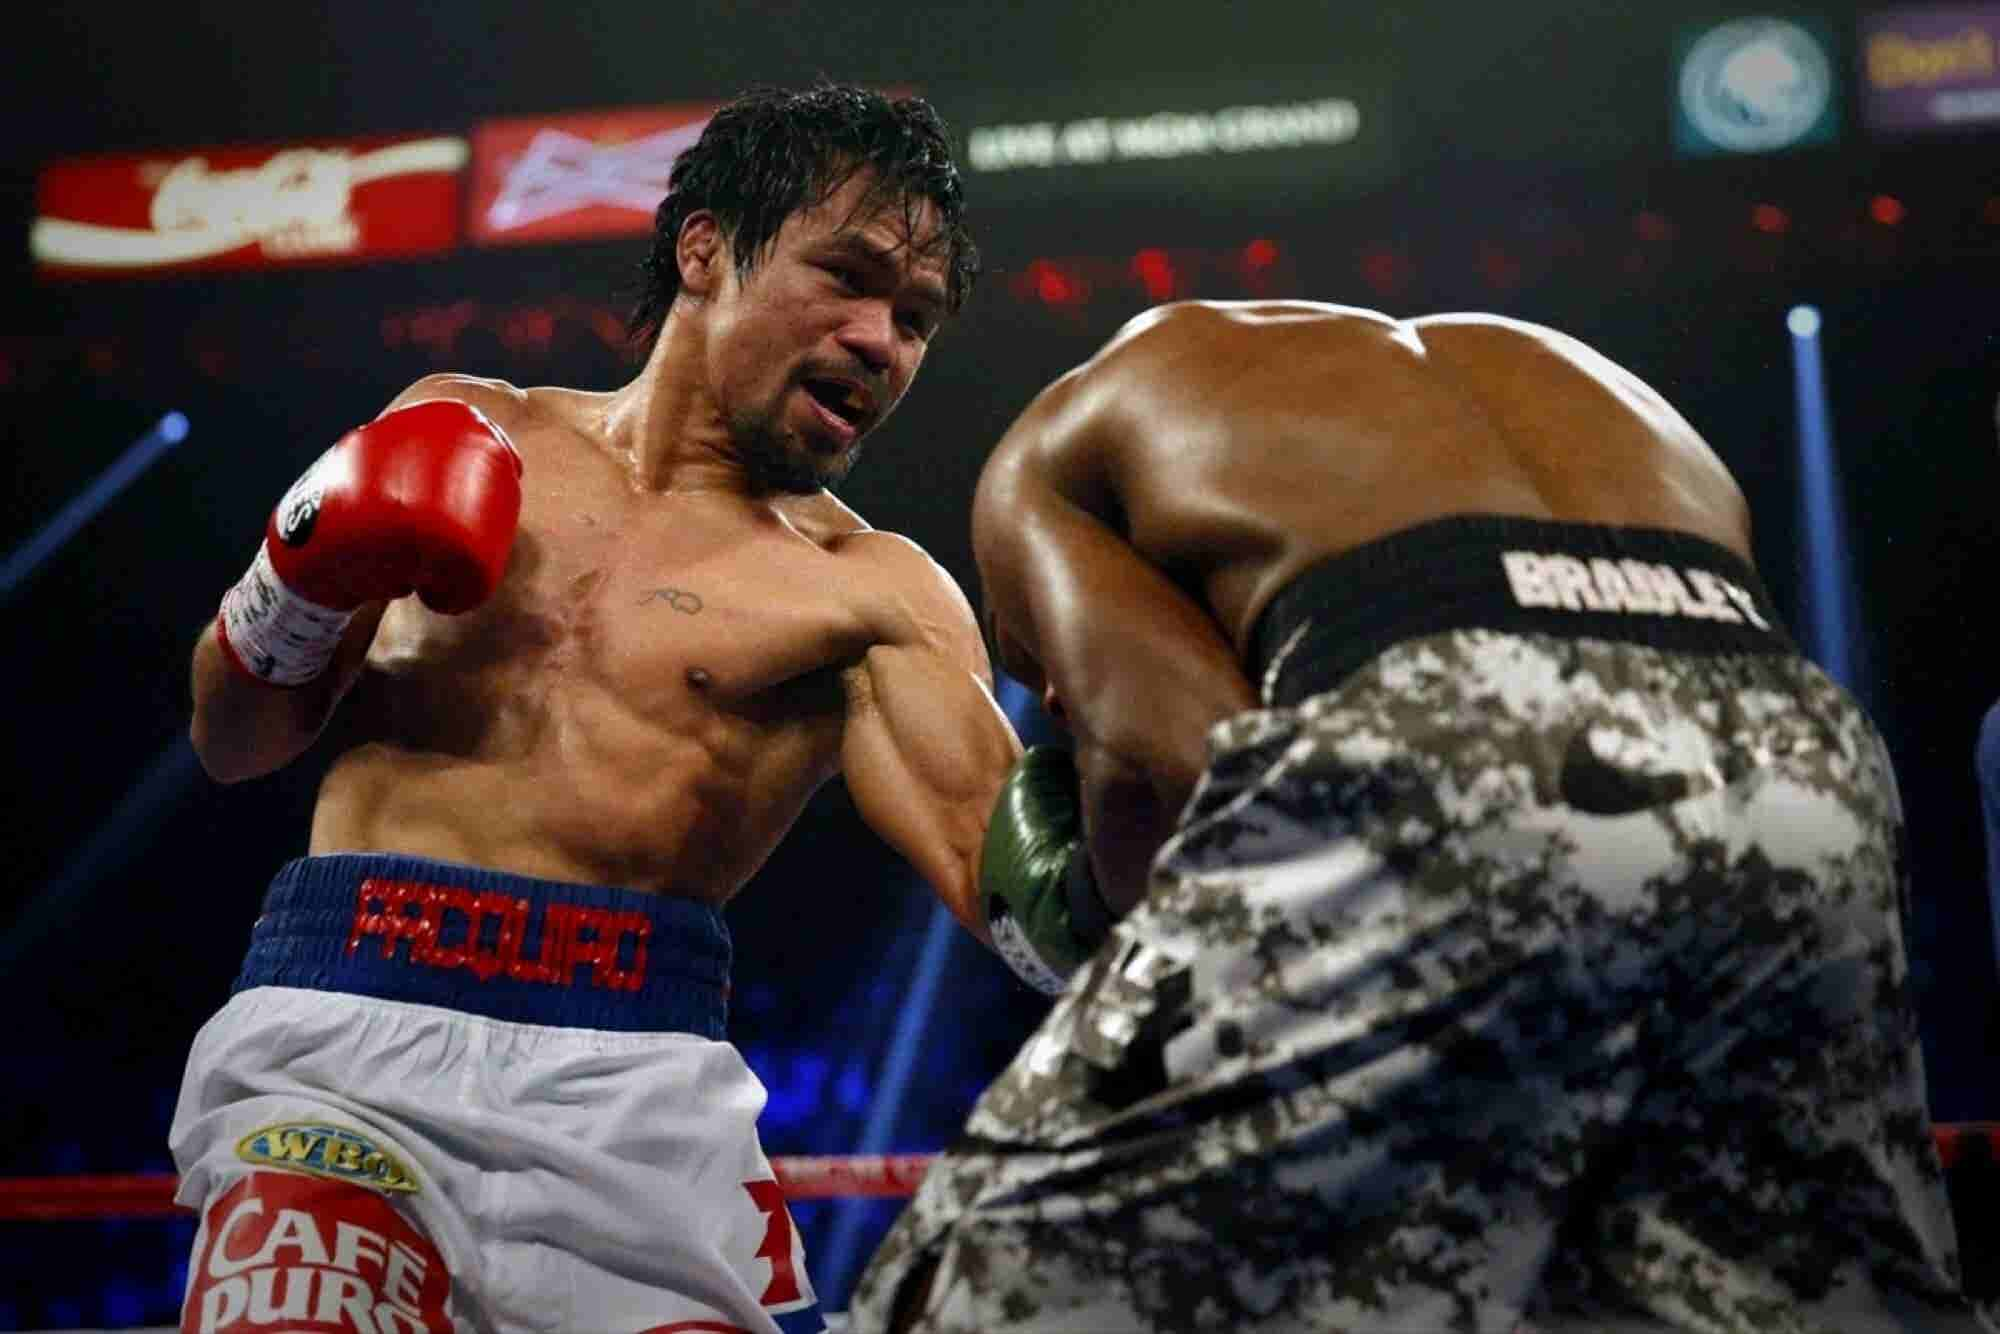 Nike Cuts Ties With Boxer Manny Pacquiao Over Homophobic Comments